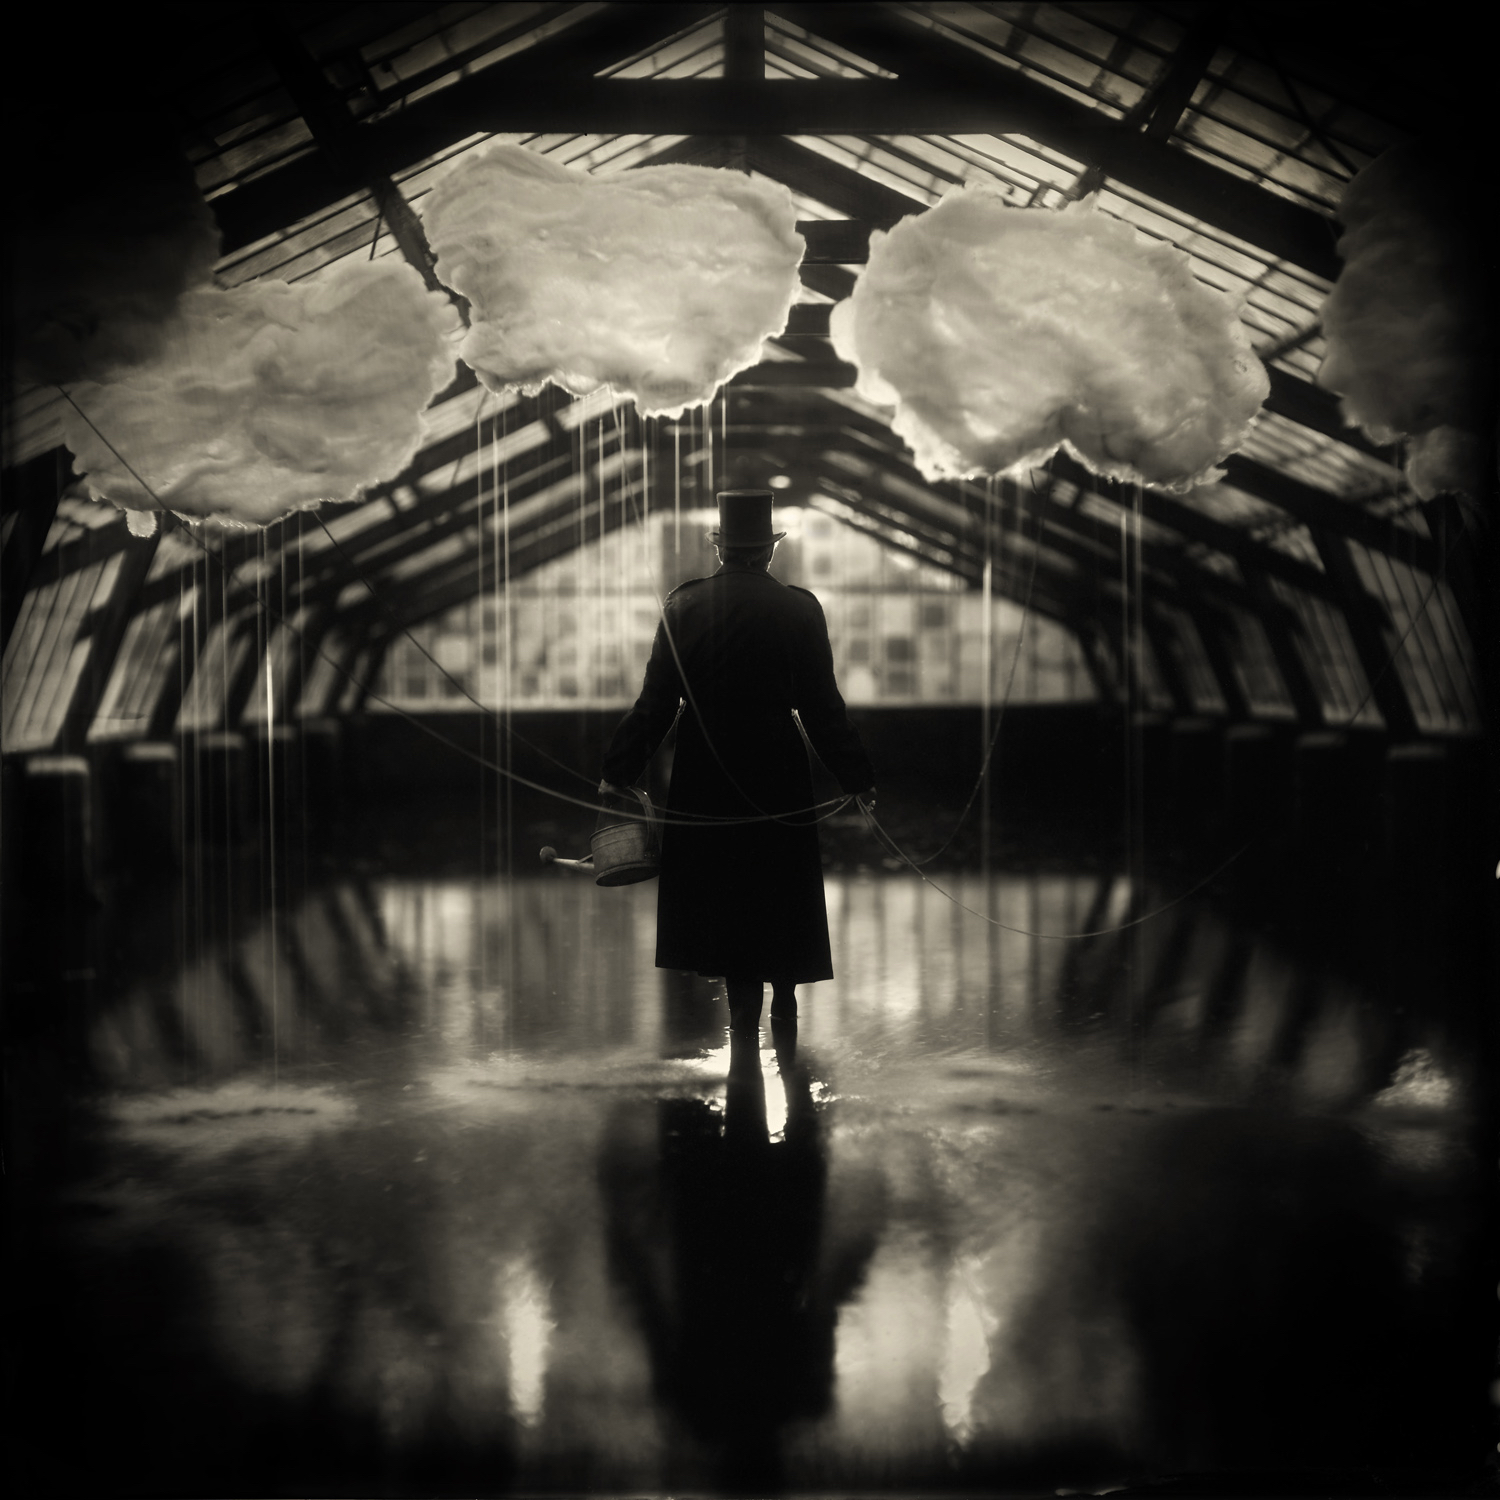 The Rain Maker by Alex Timmermans  Available in different sizes. Price on request.